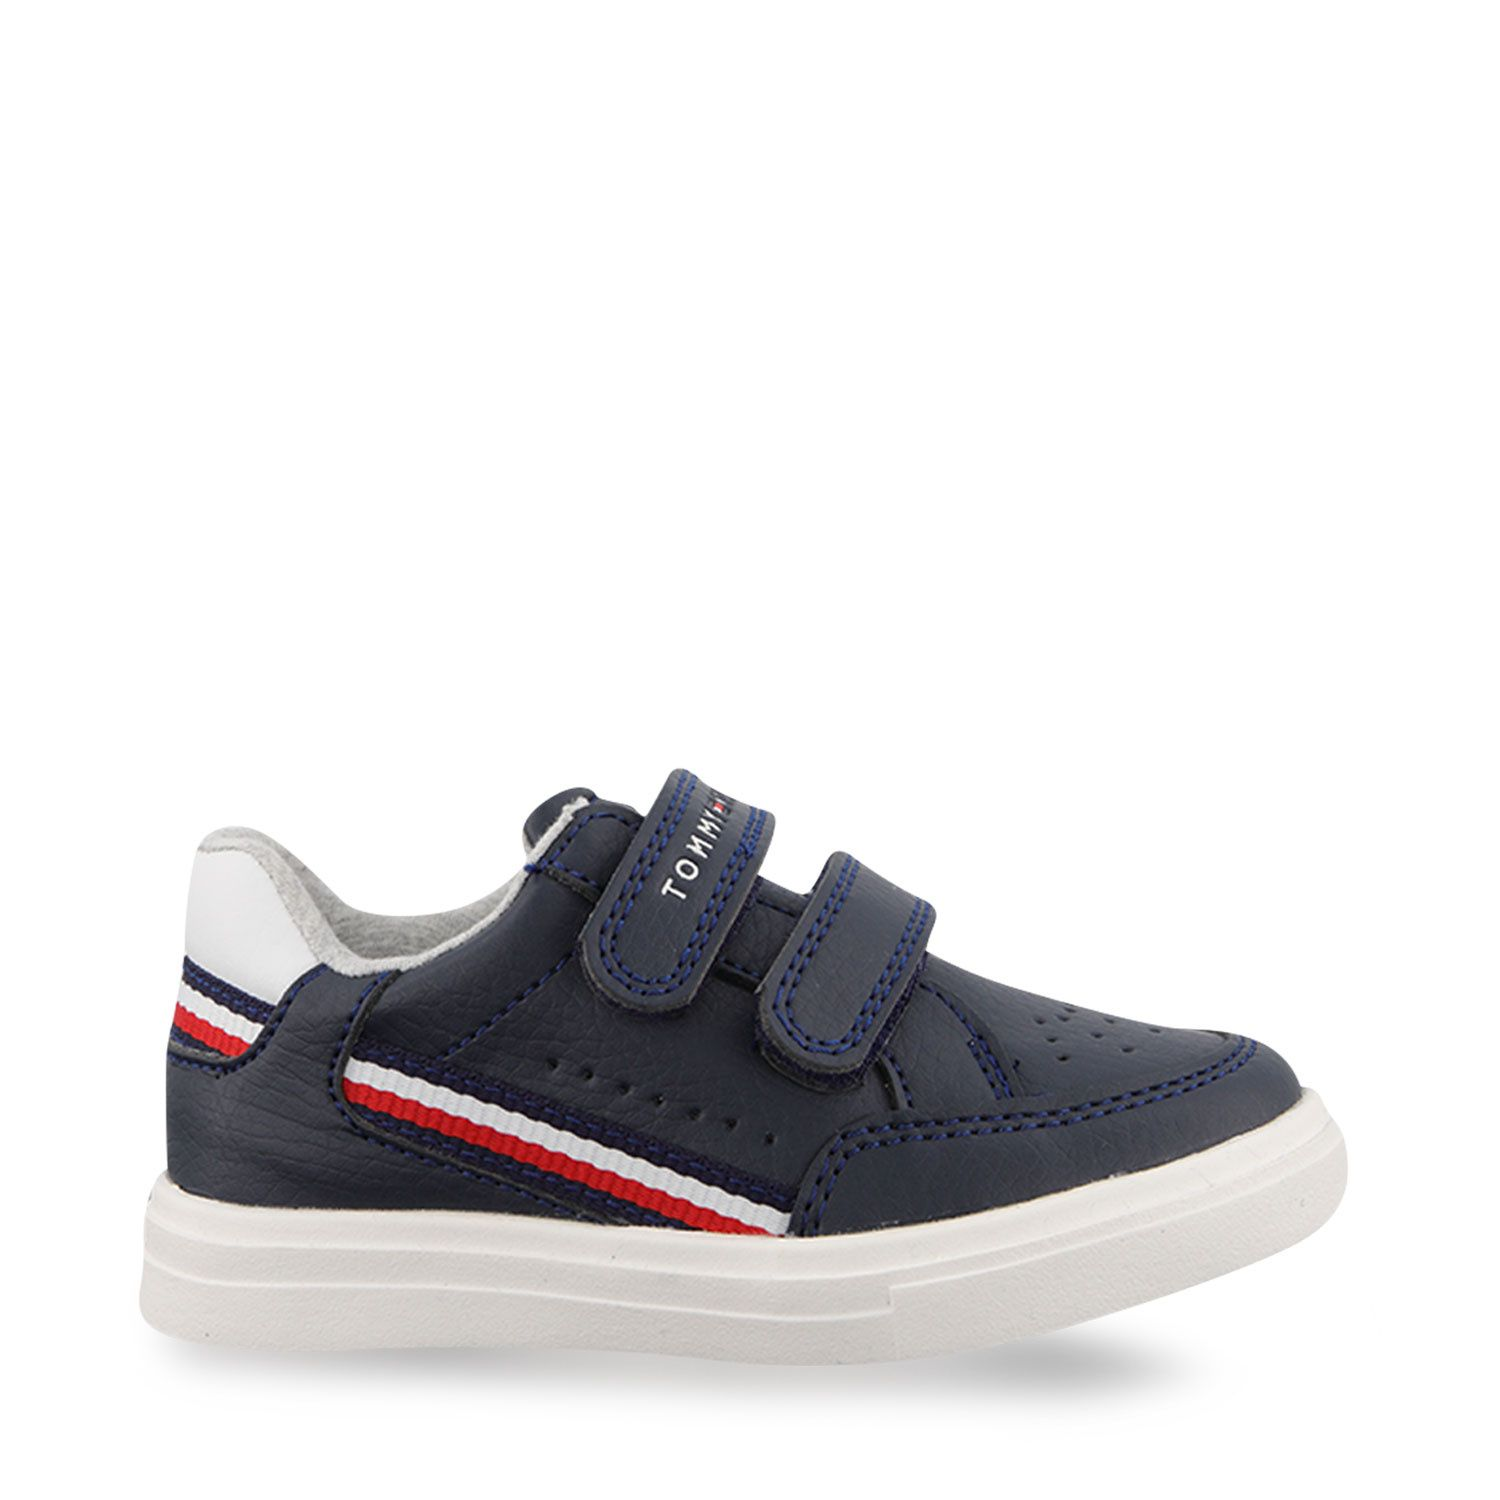 Picture of Tommy Hilfiger 31073 kids sneakers navy